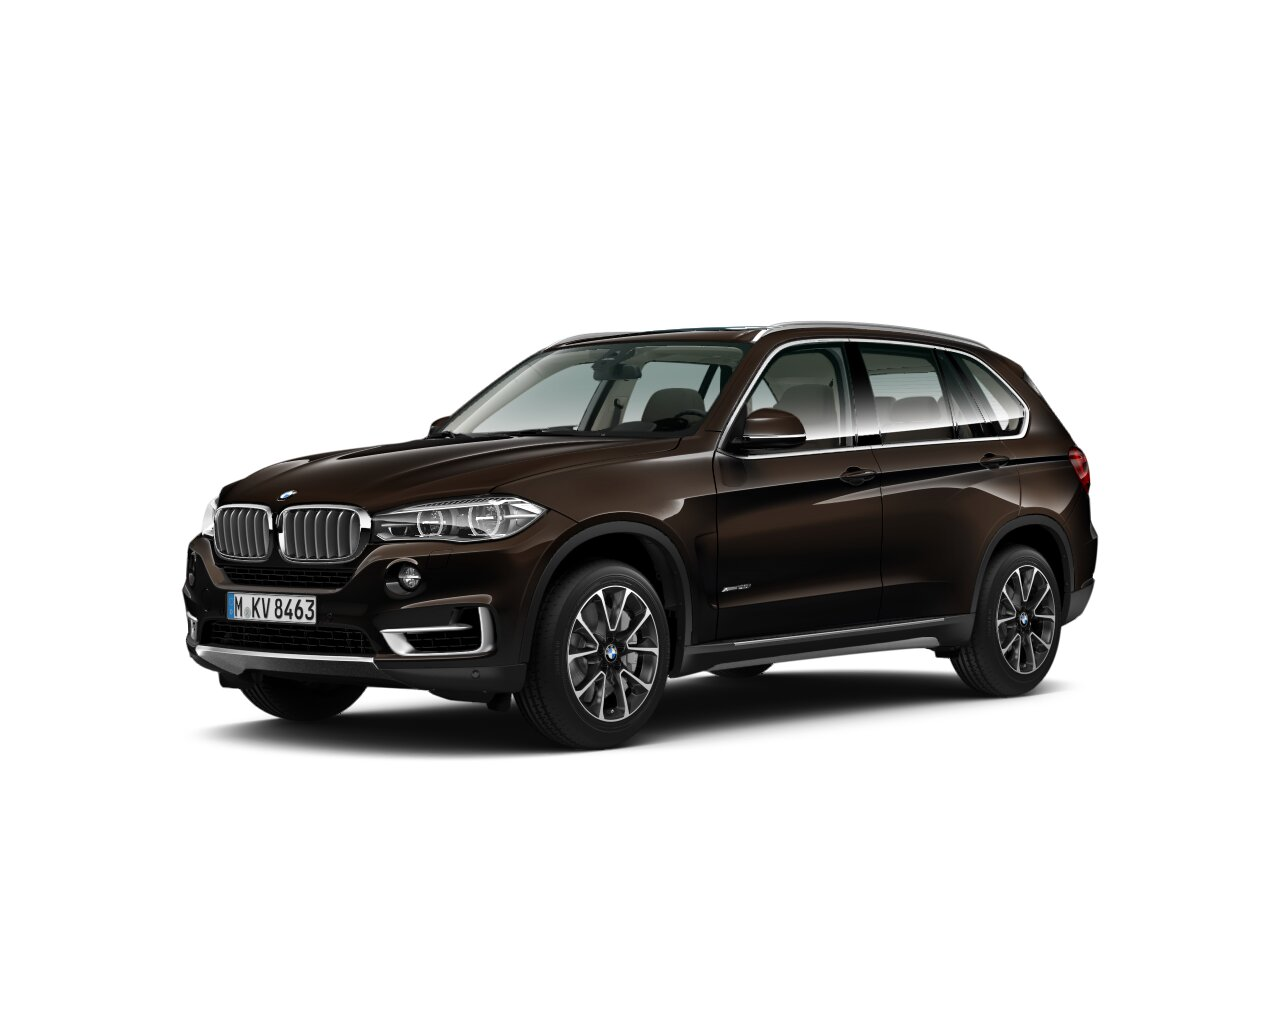 New 39 Design Worlds 39 Available For 2014 BMW X5 Autoevolution